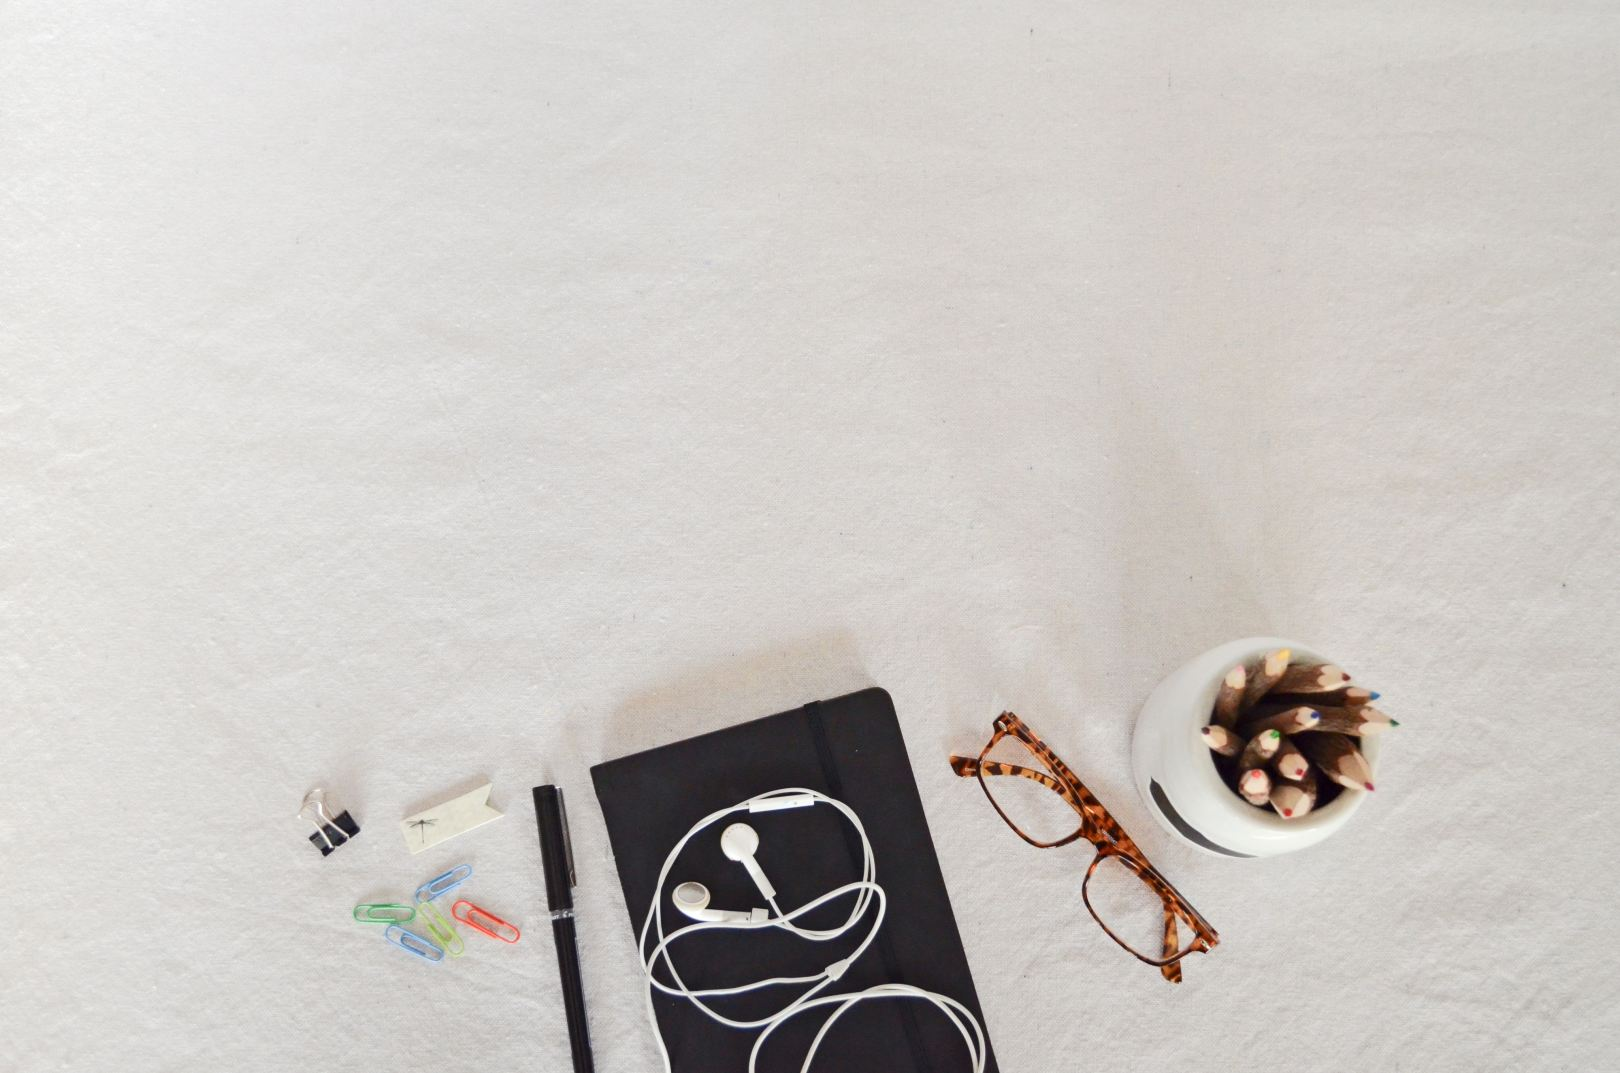 white desk notebook earbuds glasses pencils